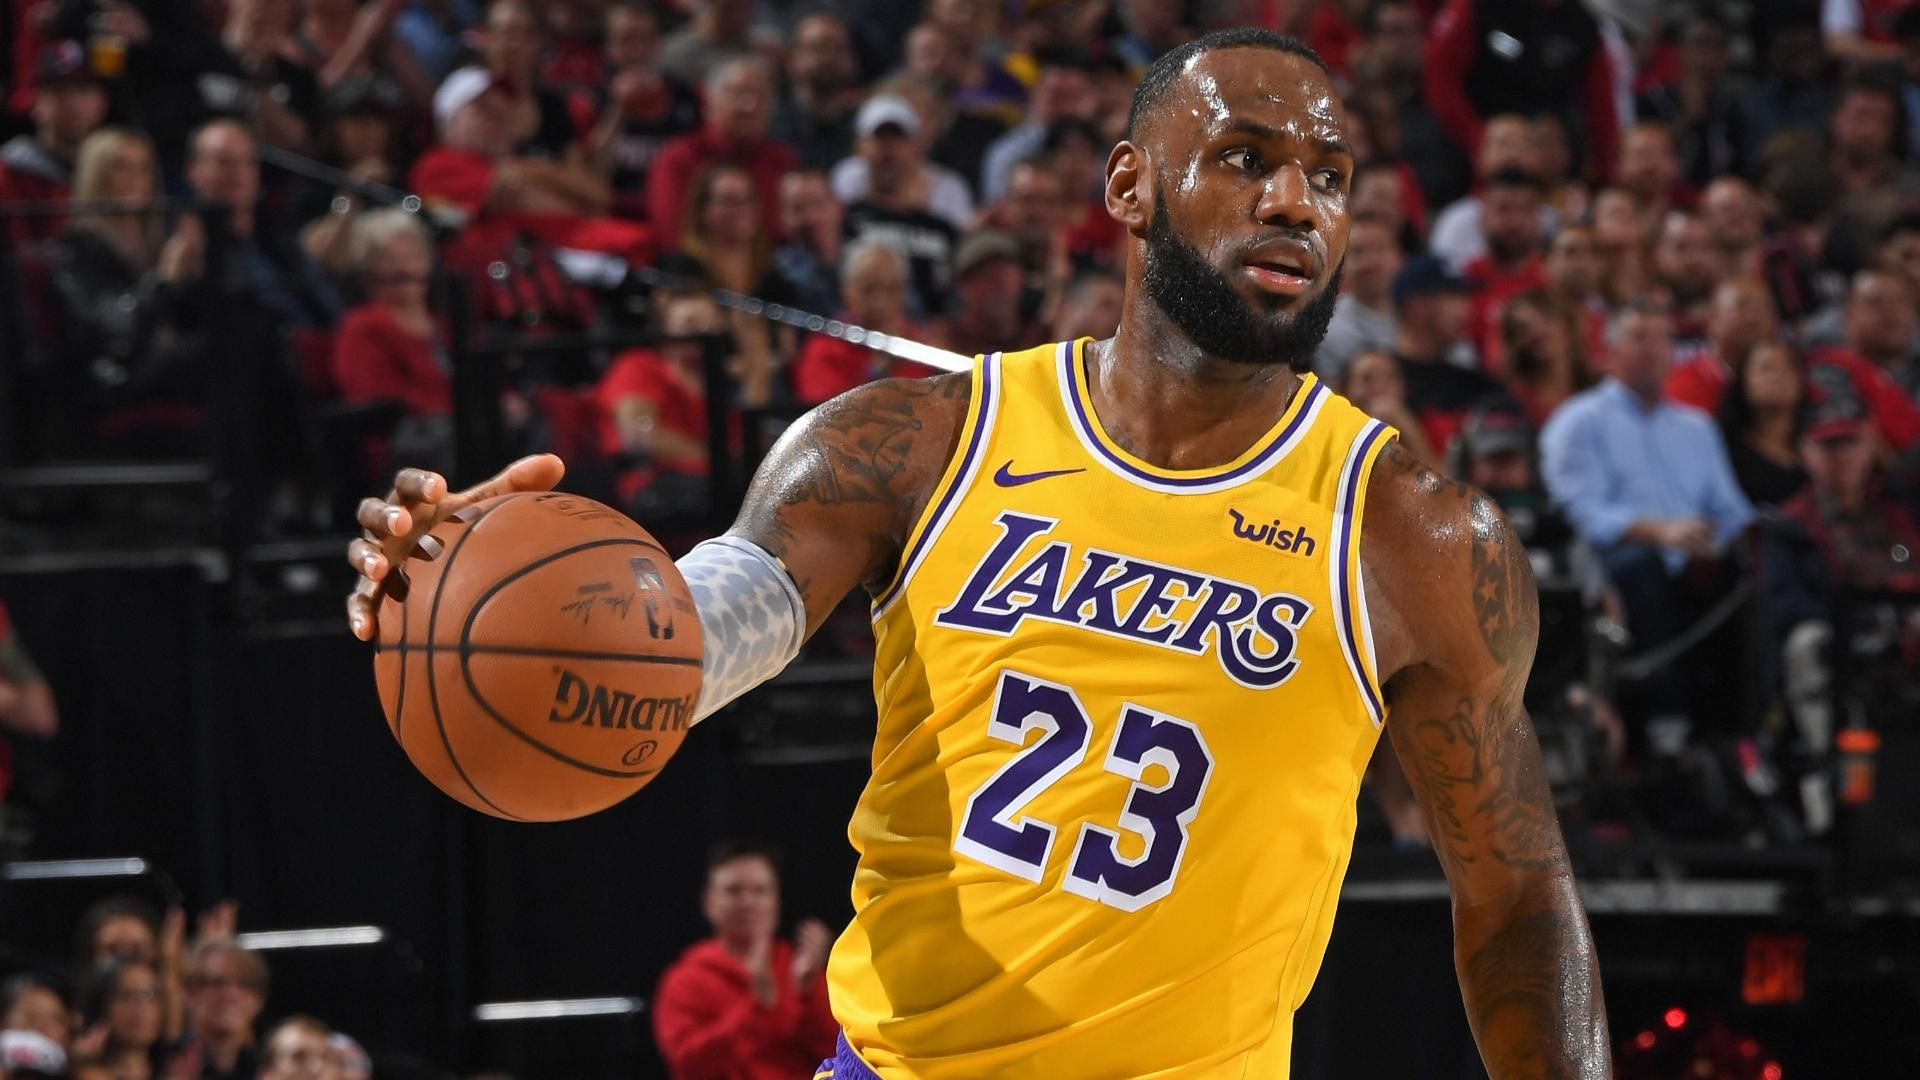 Blazers spoil James' debut with 128-119 win over the Lakers